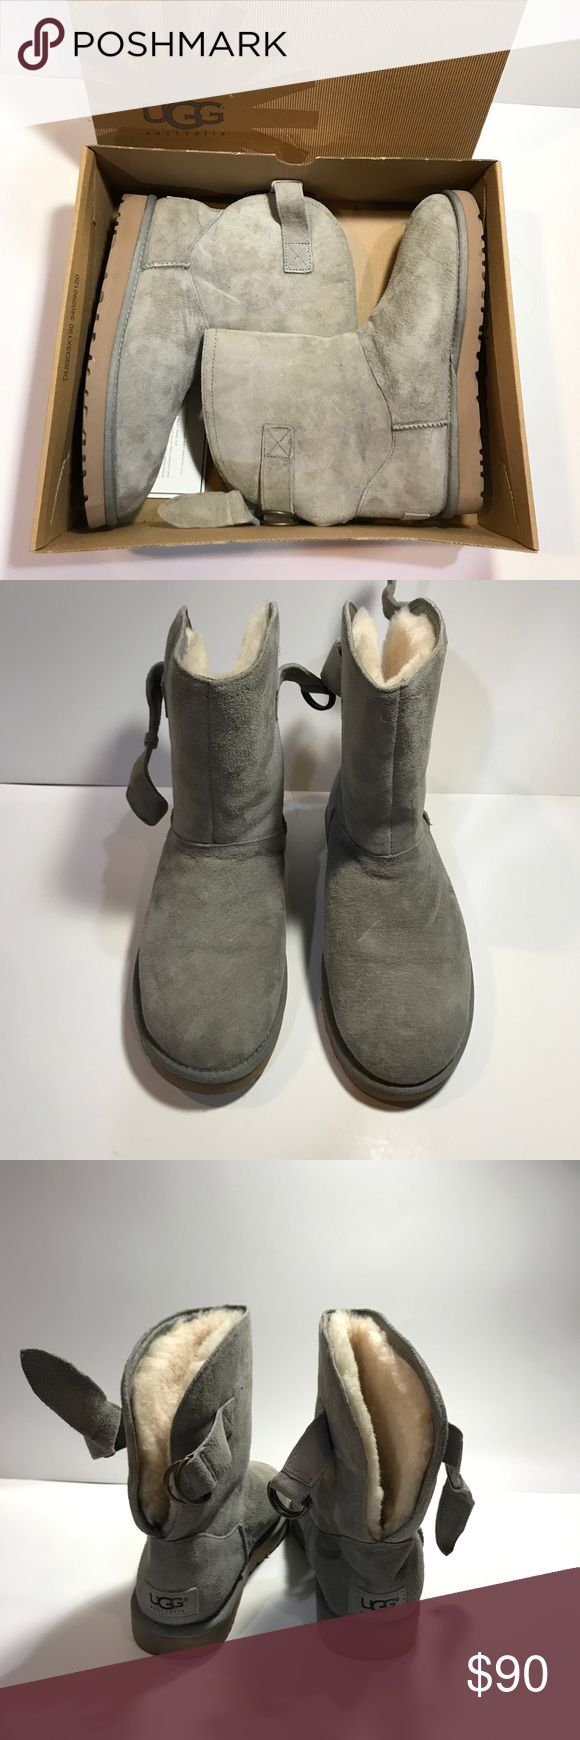 Ugg Australia Remora Women US 7 White Winter Boot Brand new boots, never worn size 7, Grey UGG Shoes Winter & Rain Boots